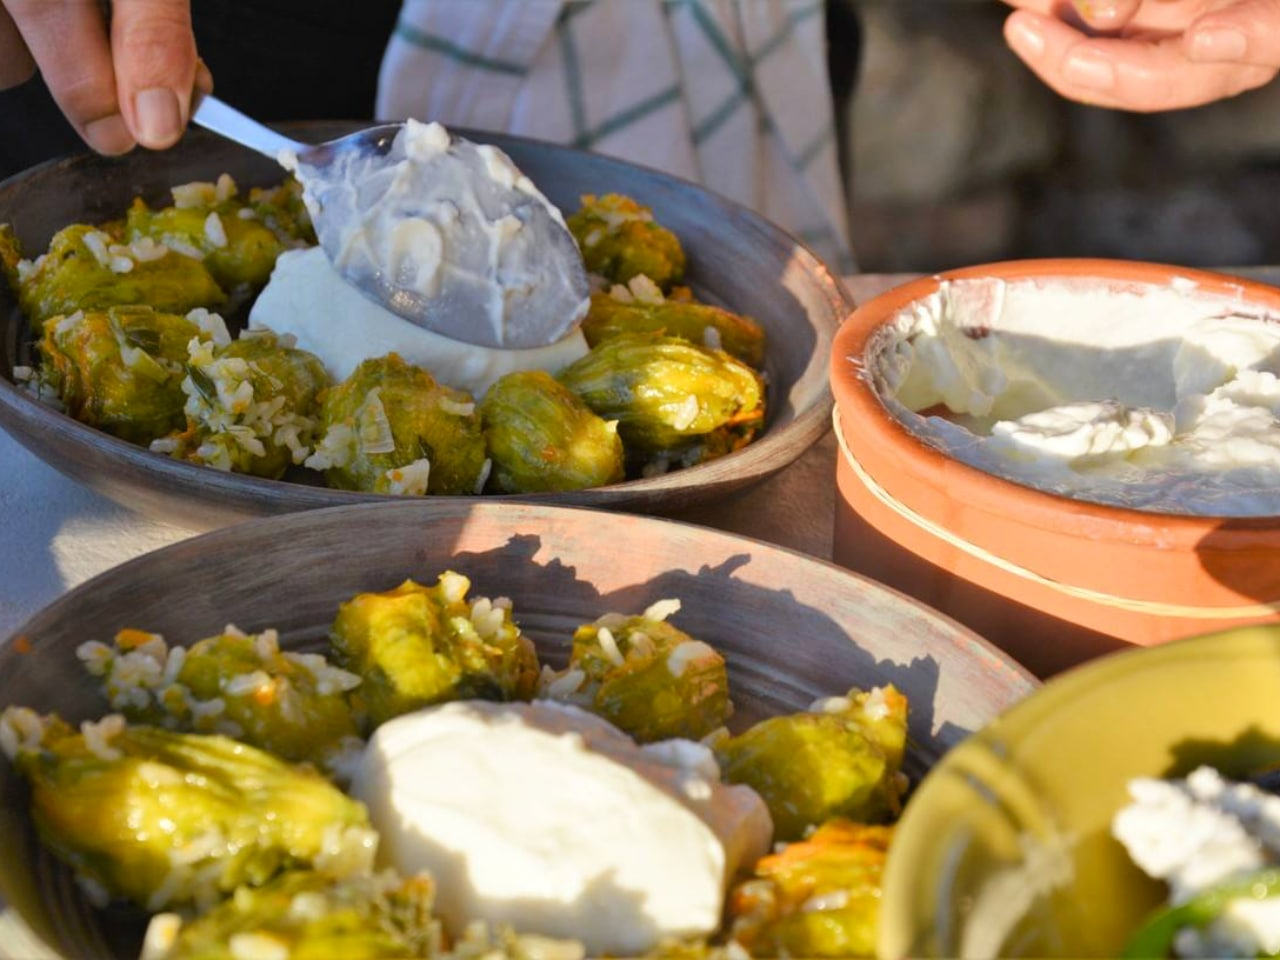 Three Day Cretan Gastronomy Course, Market Visits & Cooking Workshops chania crete, cooking lessons chania crete, activities chania crete, things to do chania crete, best cooking workshop chania crete